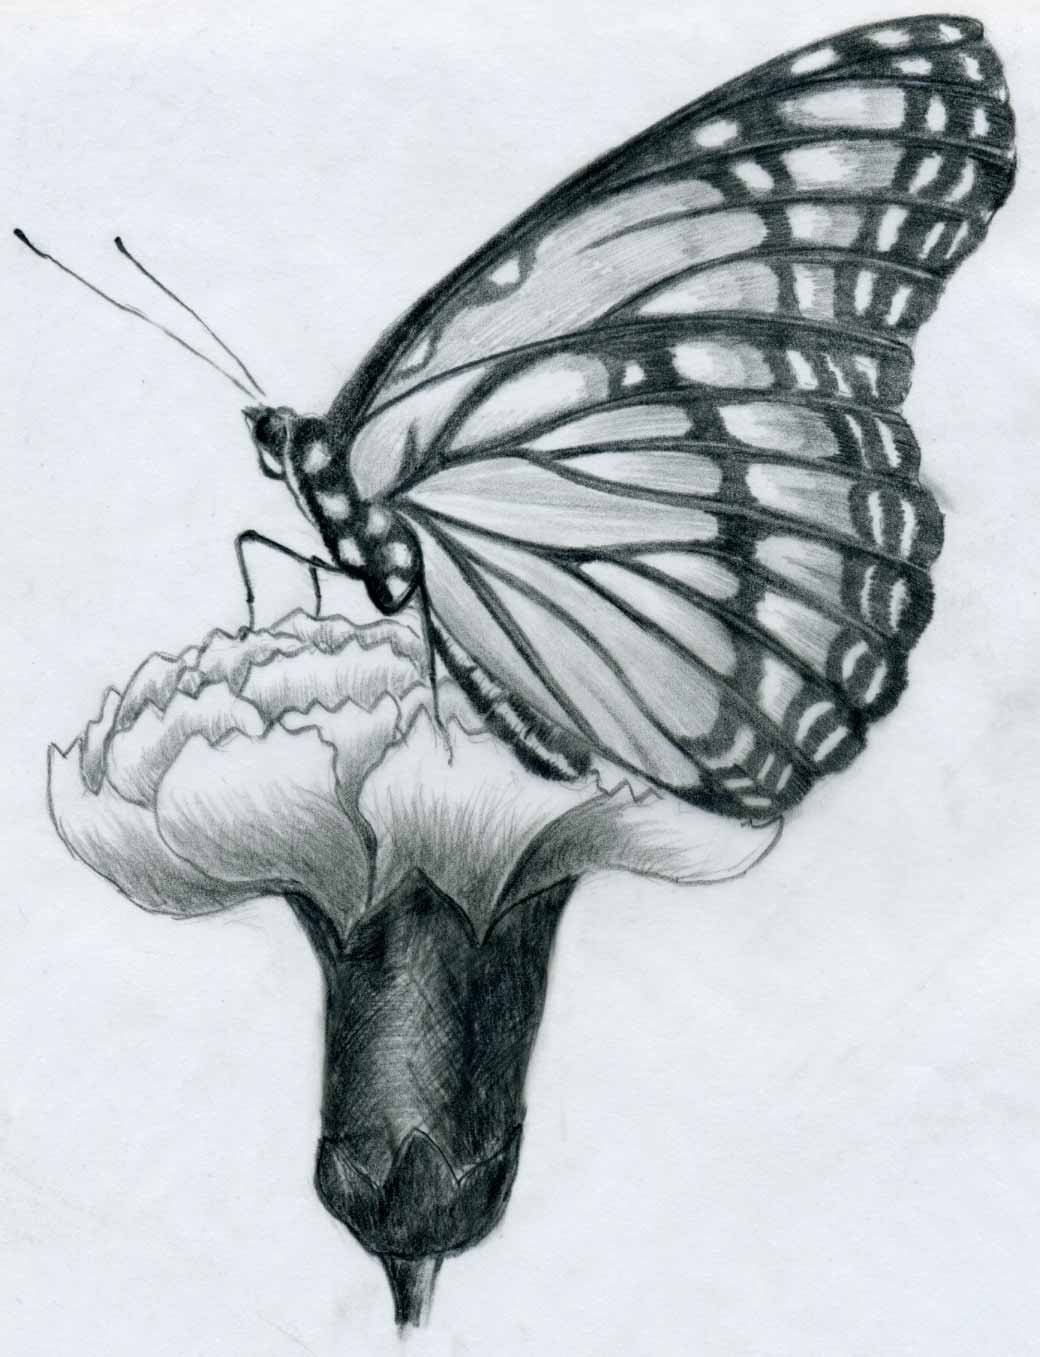 http://www.easy-drawings-and-sketches.com/images/butterfly-pencil-drawings08.jpg